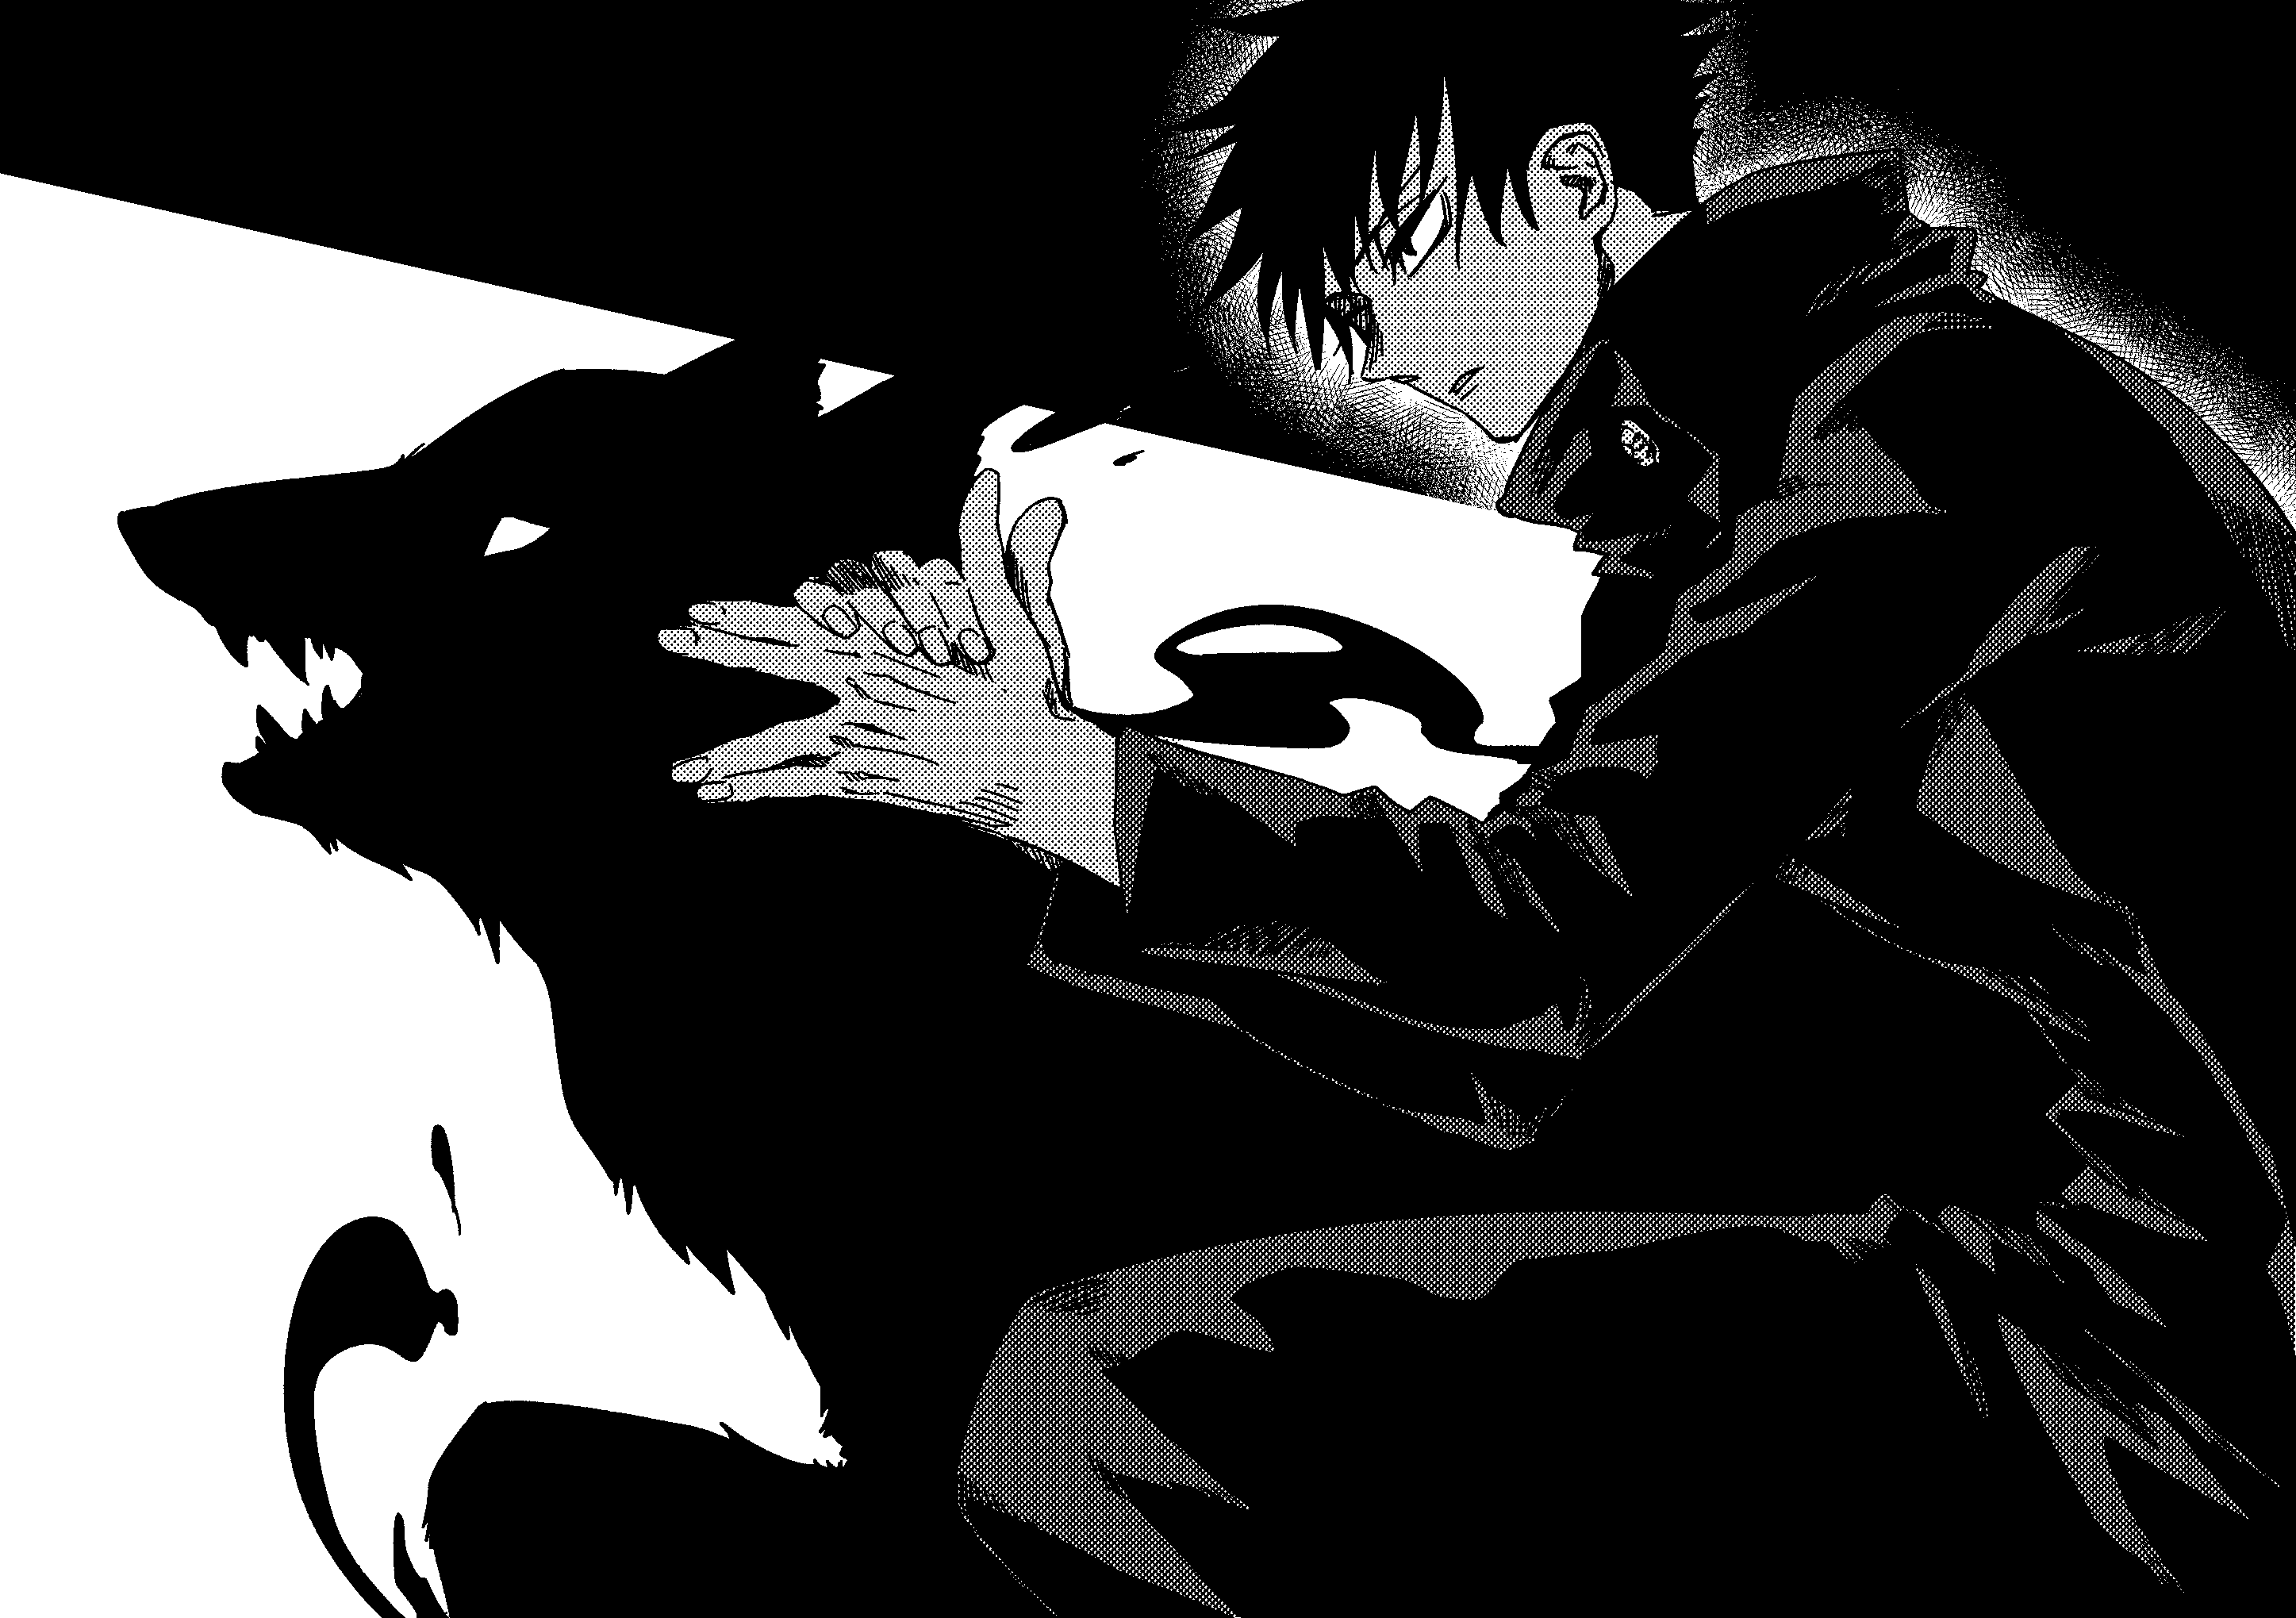 Jujutsu Kaisen Hd Wallpaper Background Image 2894x2039 Id 1101603 Wallpaper Abyss